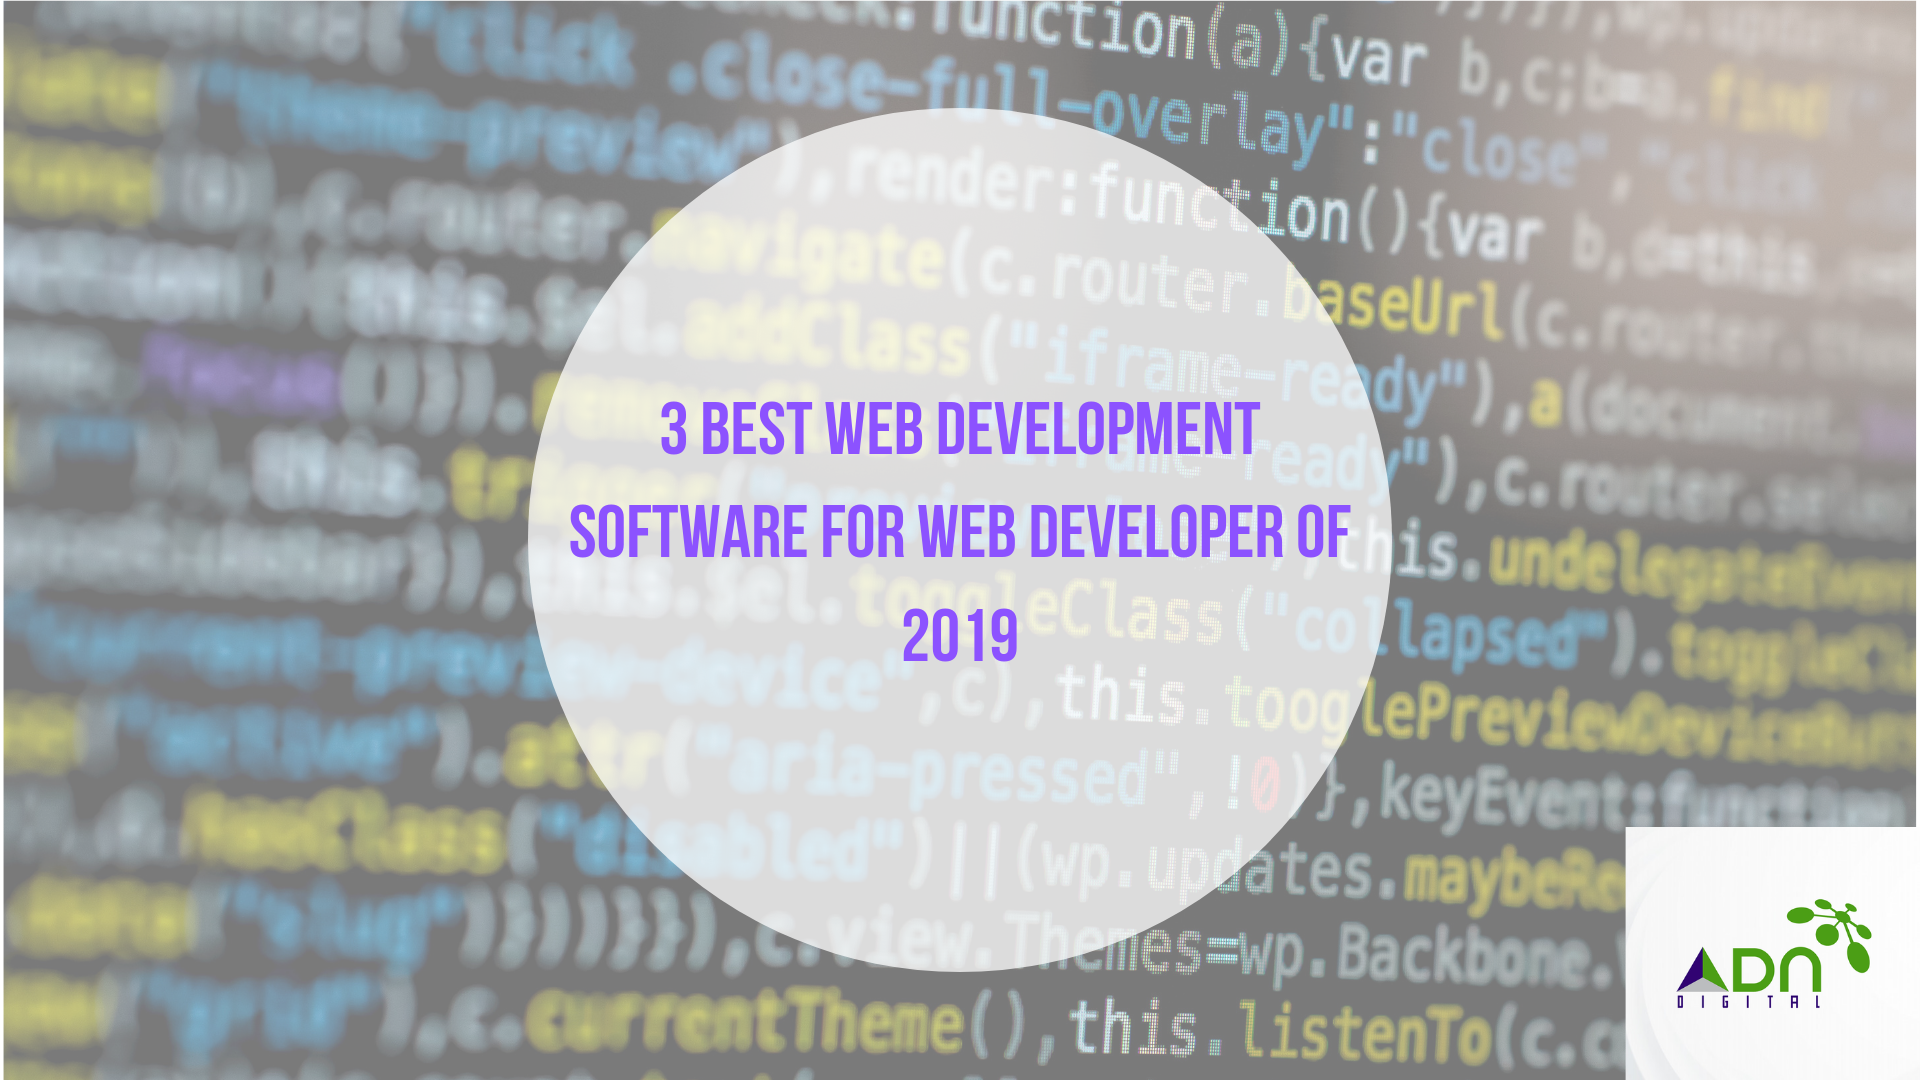 3 Best Web Development Software for Web Developer of 2019 - ADN Digital